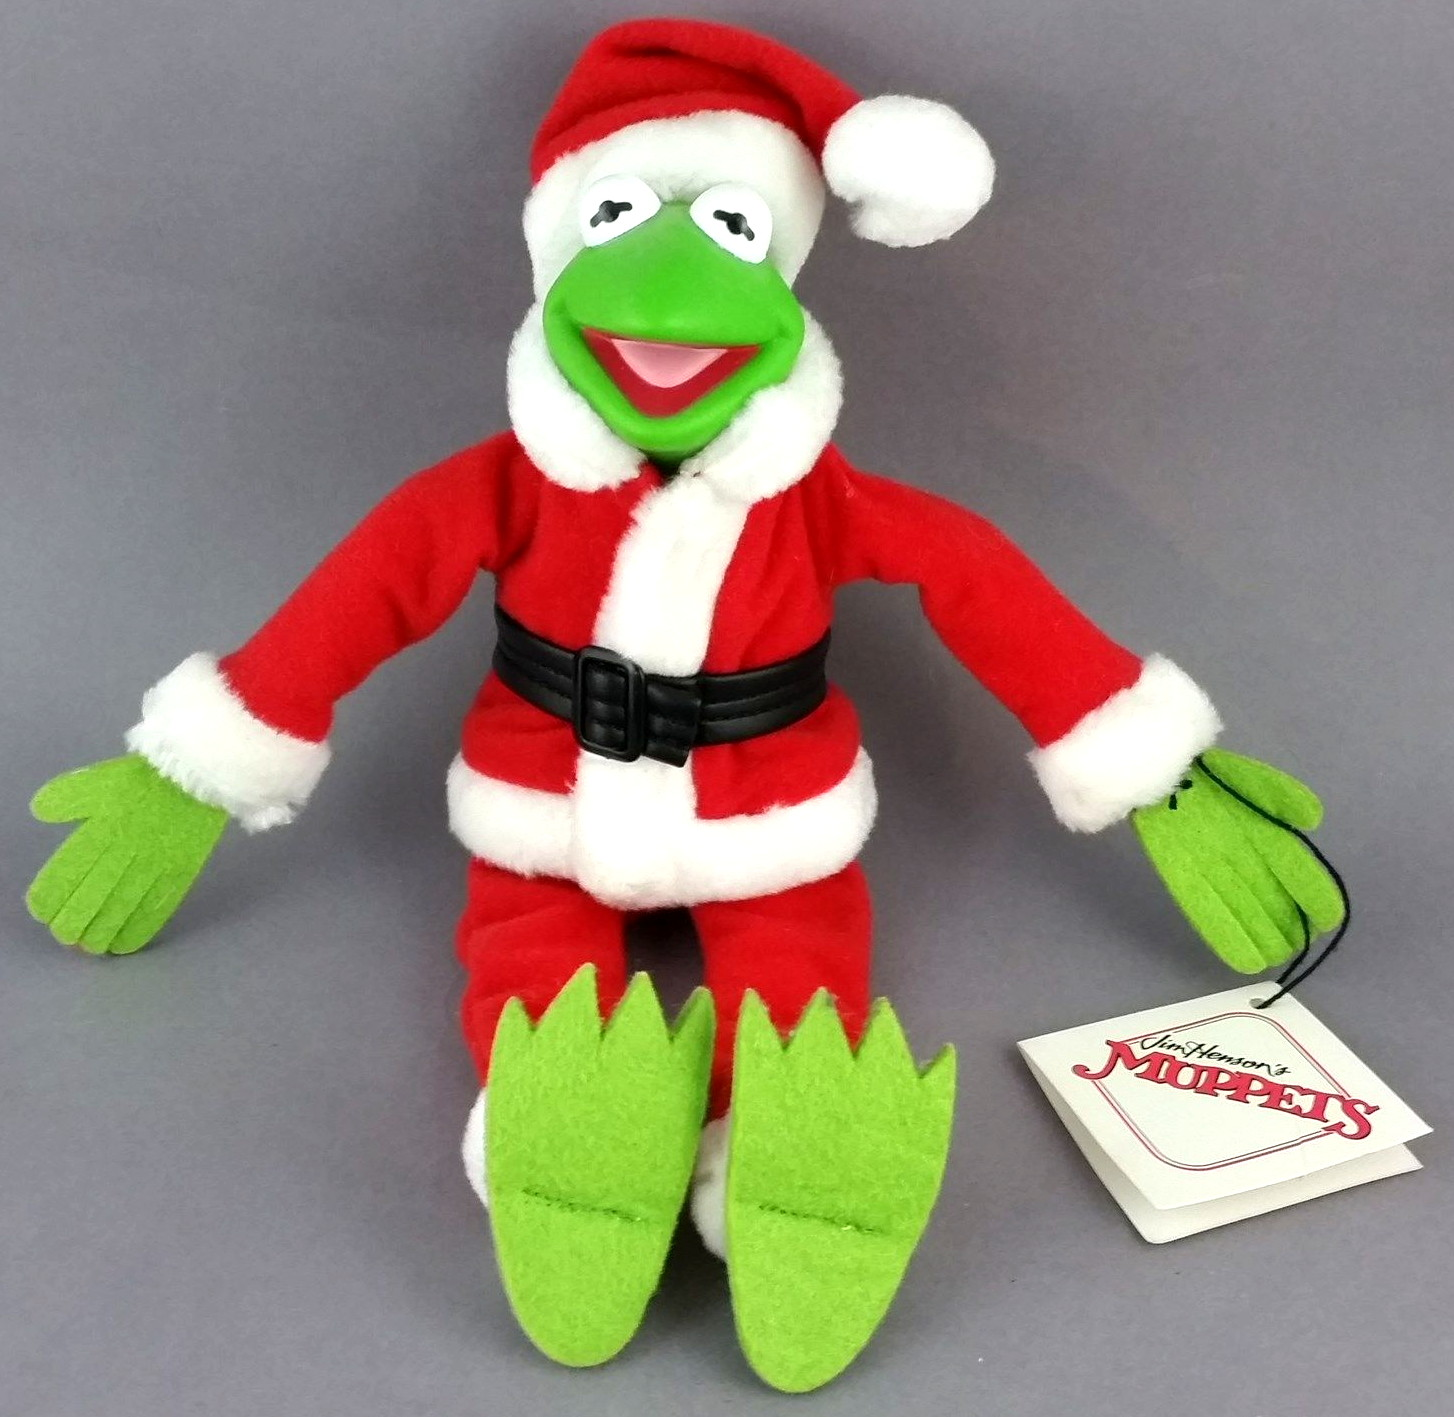 File:Merch.santakermit.jpg